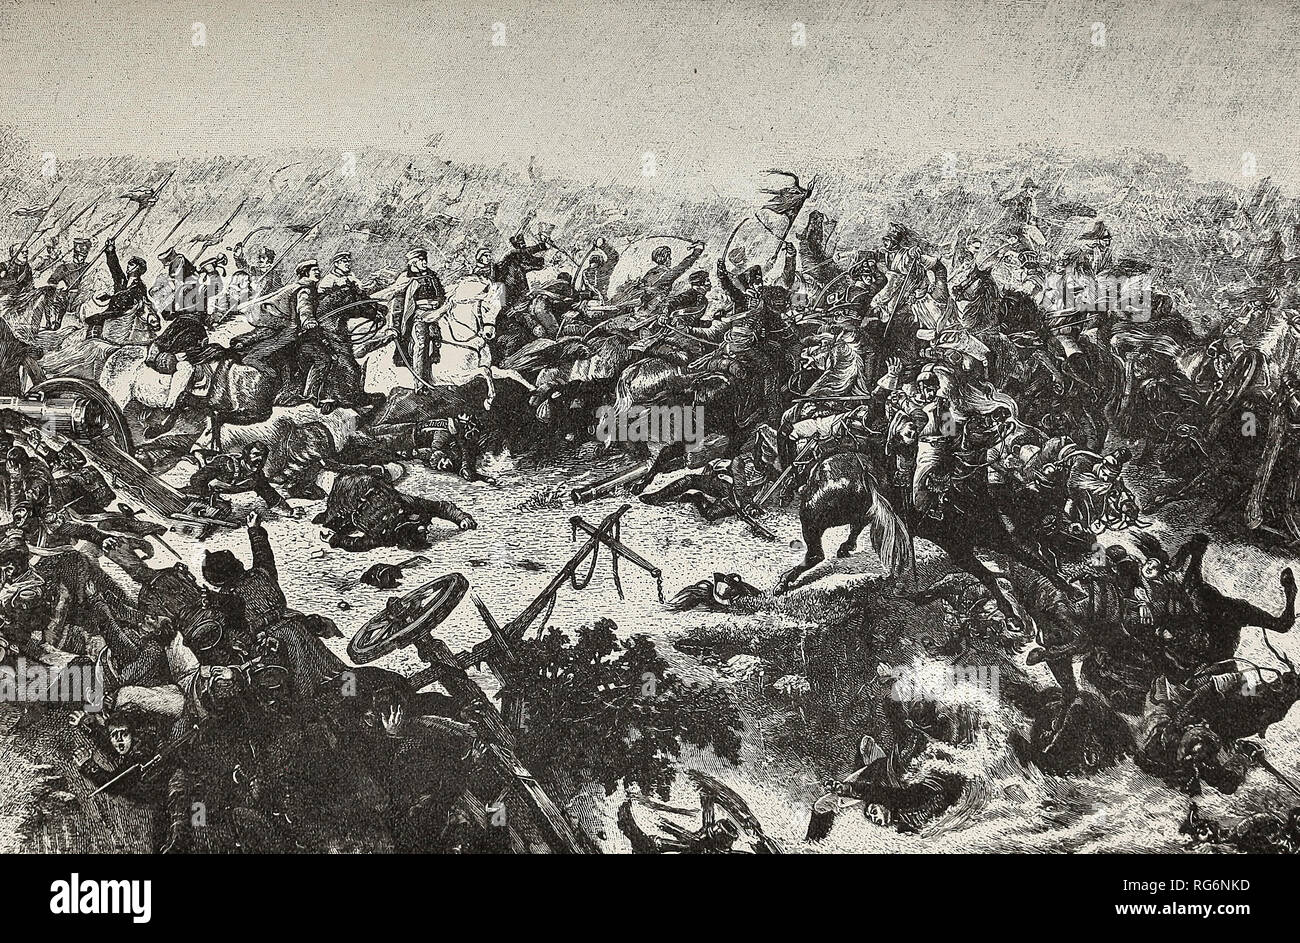 The Battle of the Katzbach - Marshal Blucher and his Prussians drive the French backward into the river - Stock Image